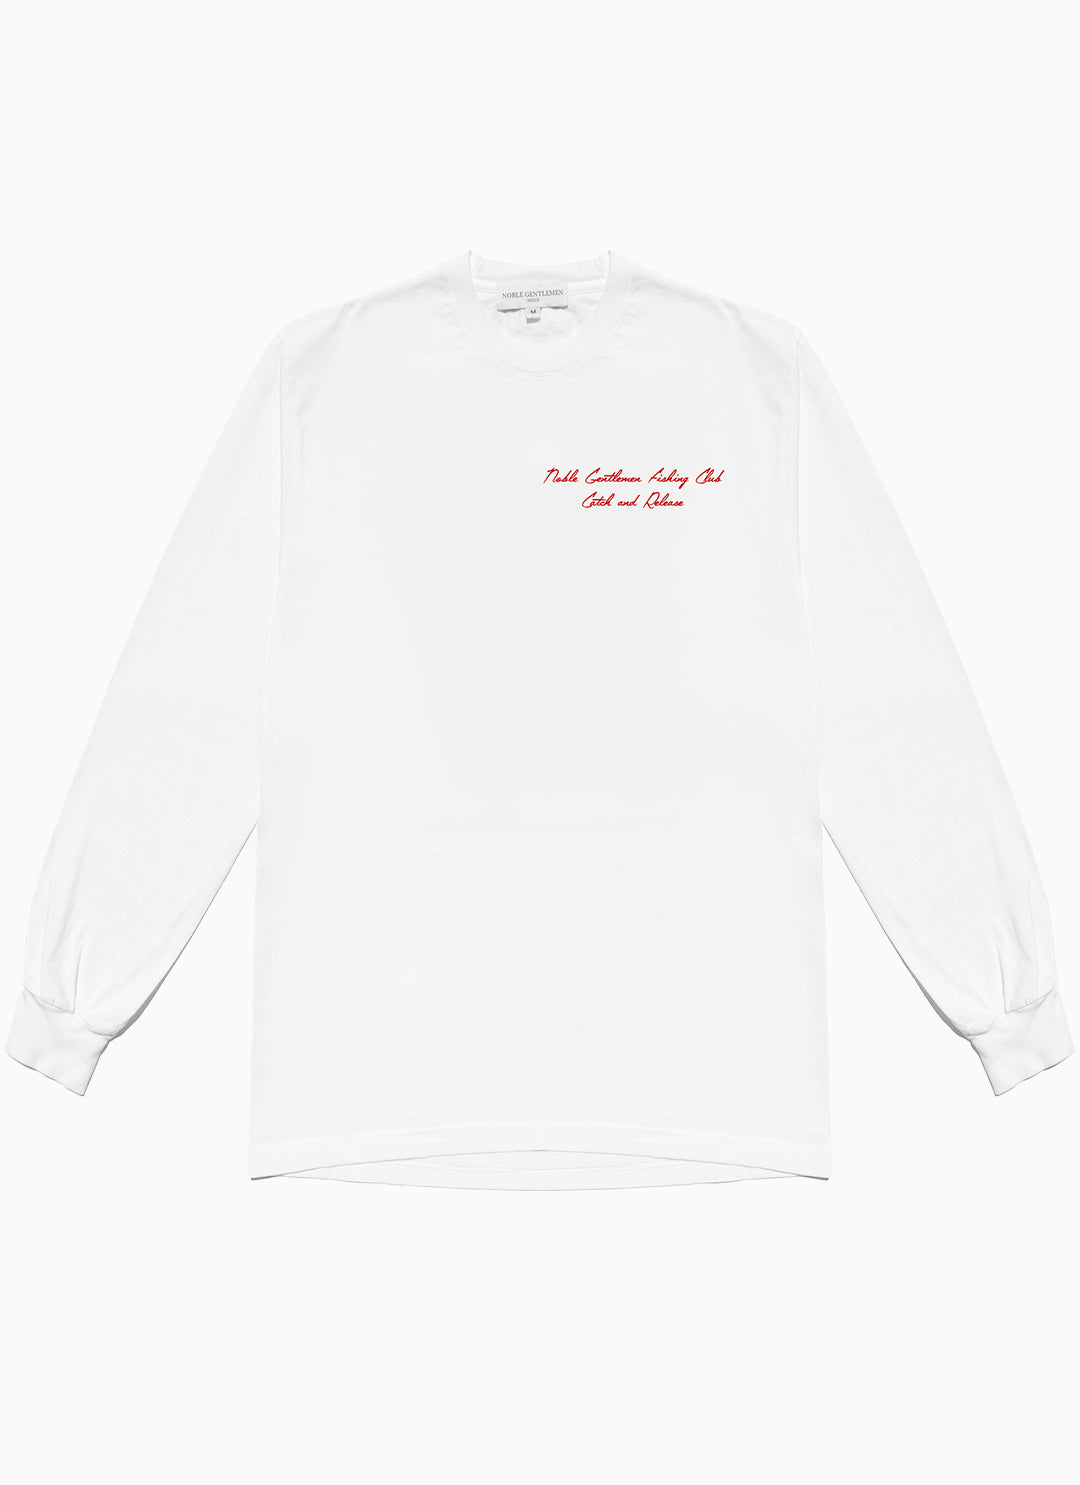 Fishing Club LS Tee